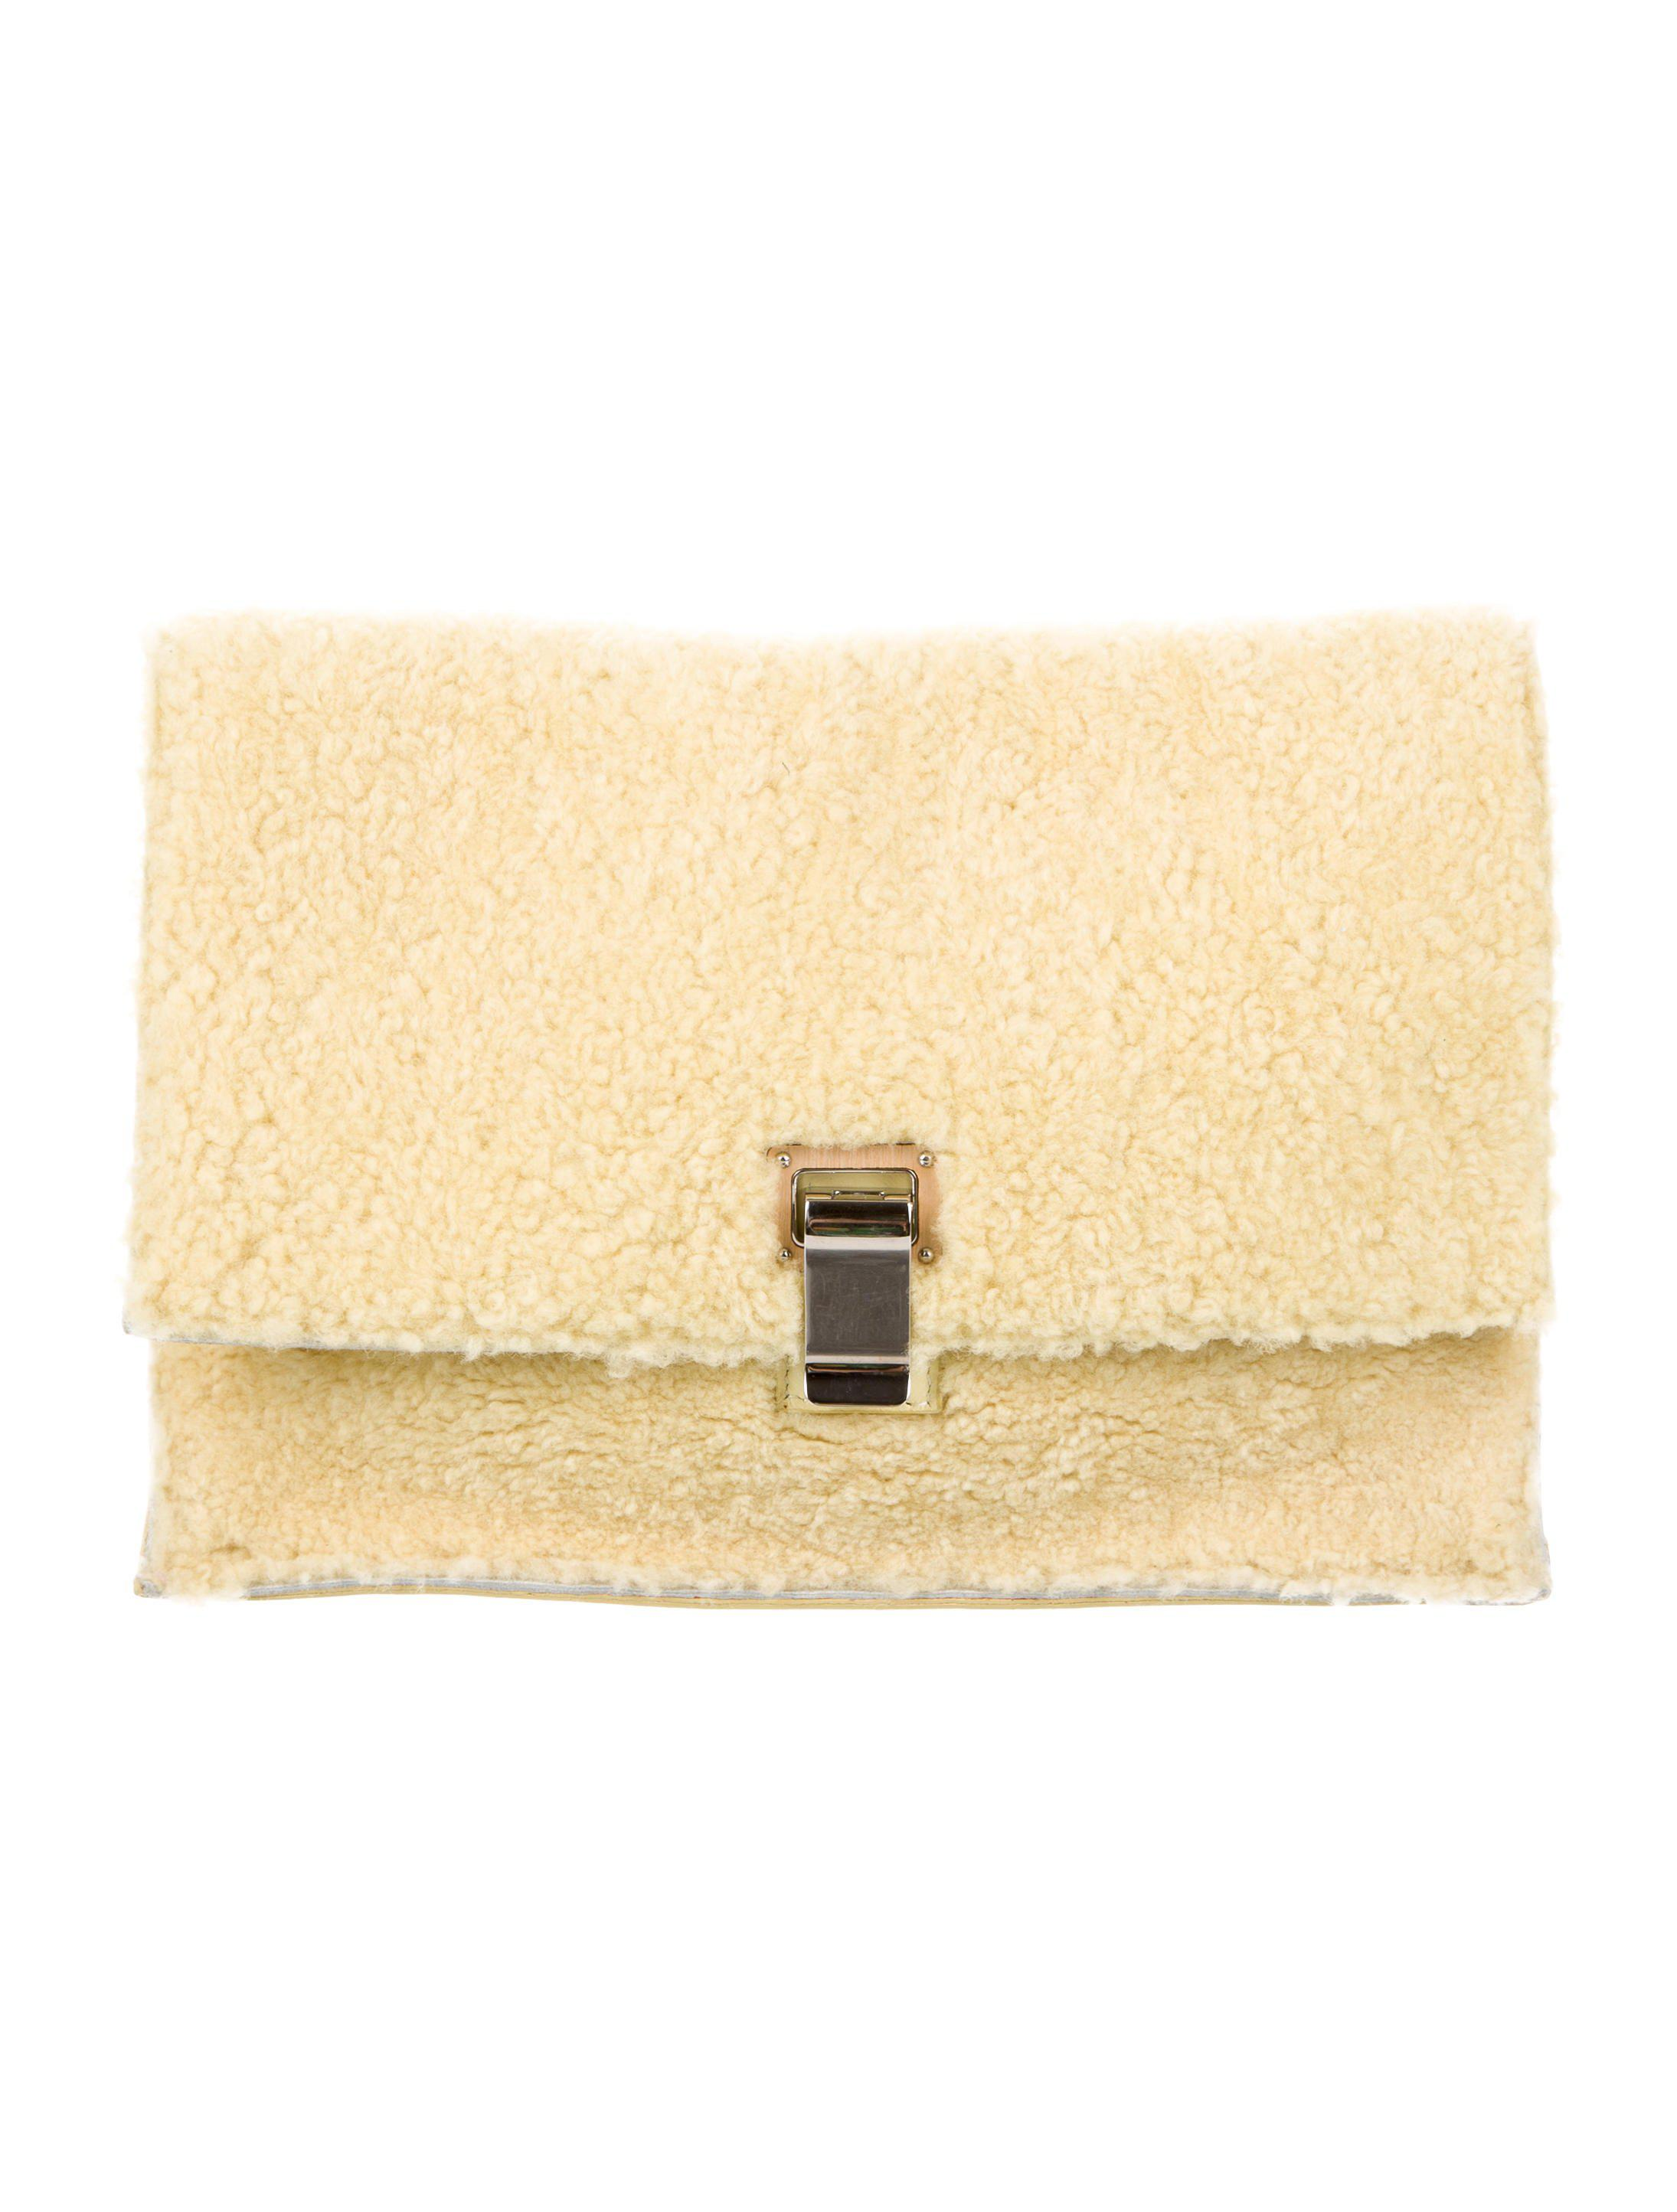 Proenza Schouler Pre-owned - Lunch shearling clutch bag F6Lw0e